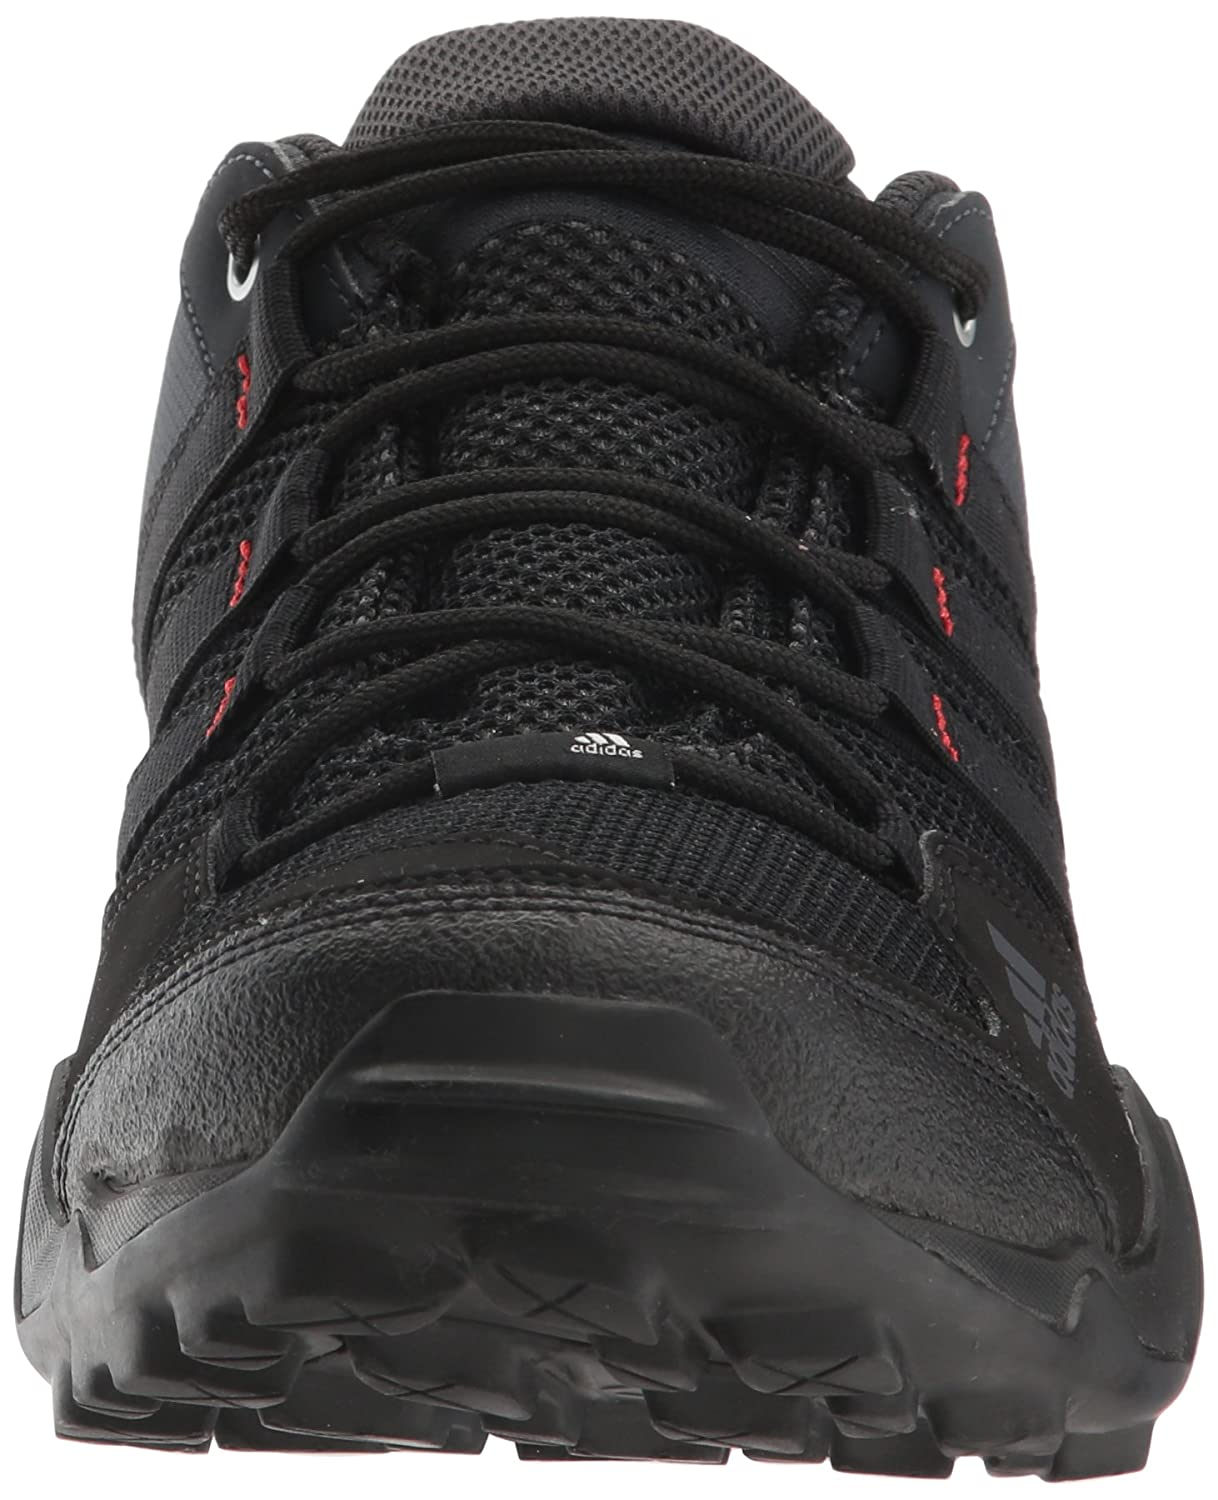 adidas outdoor Mens Ax2 Hiking Shoe adidas Outdoor Adult Code M18683